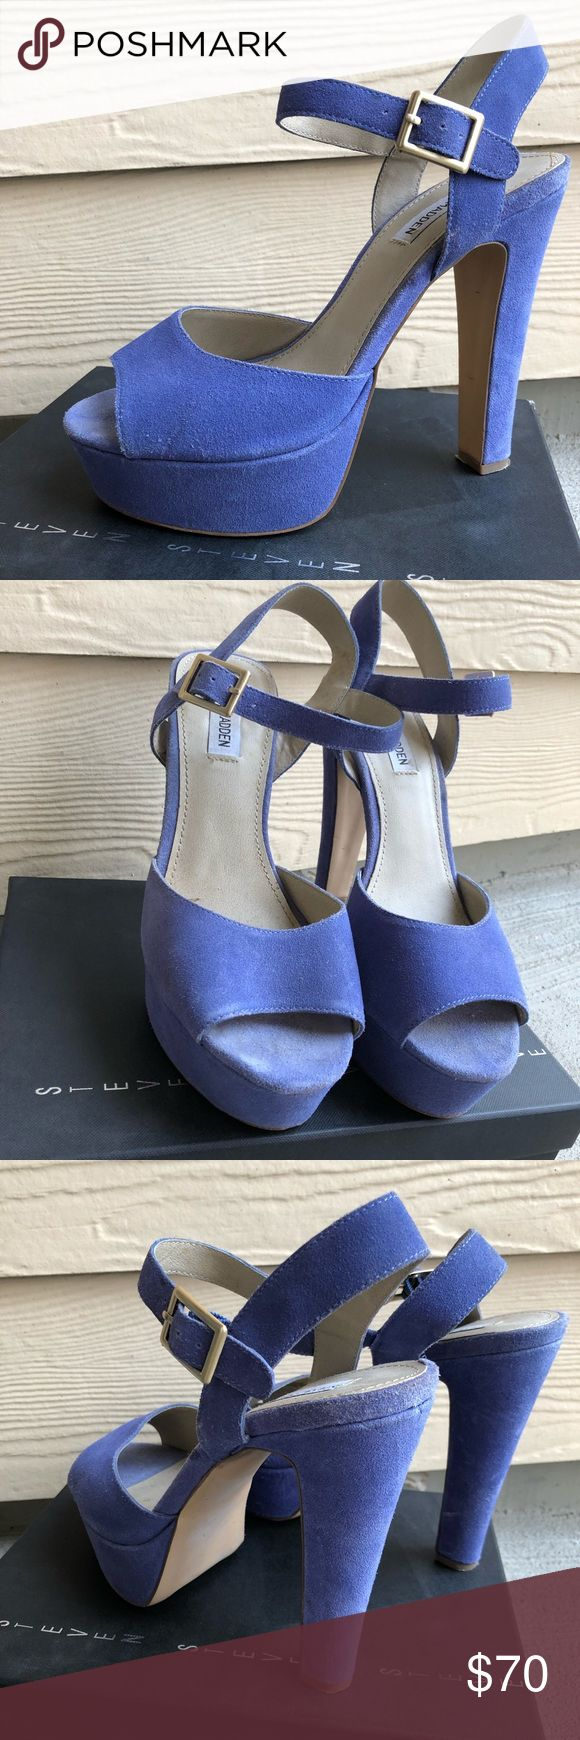 Steve Madden Platform Sandals Baby Blue Sexy Steve Madden Platform Platformed and peep-toed, this party-ready must-have will give you legs for days 4.75 inch heel height 1 inch platform Steve Madden Shoes Platforms